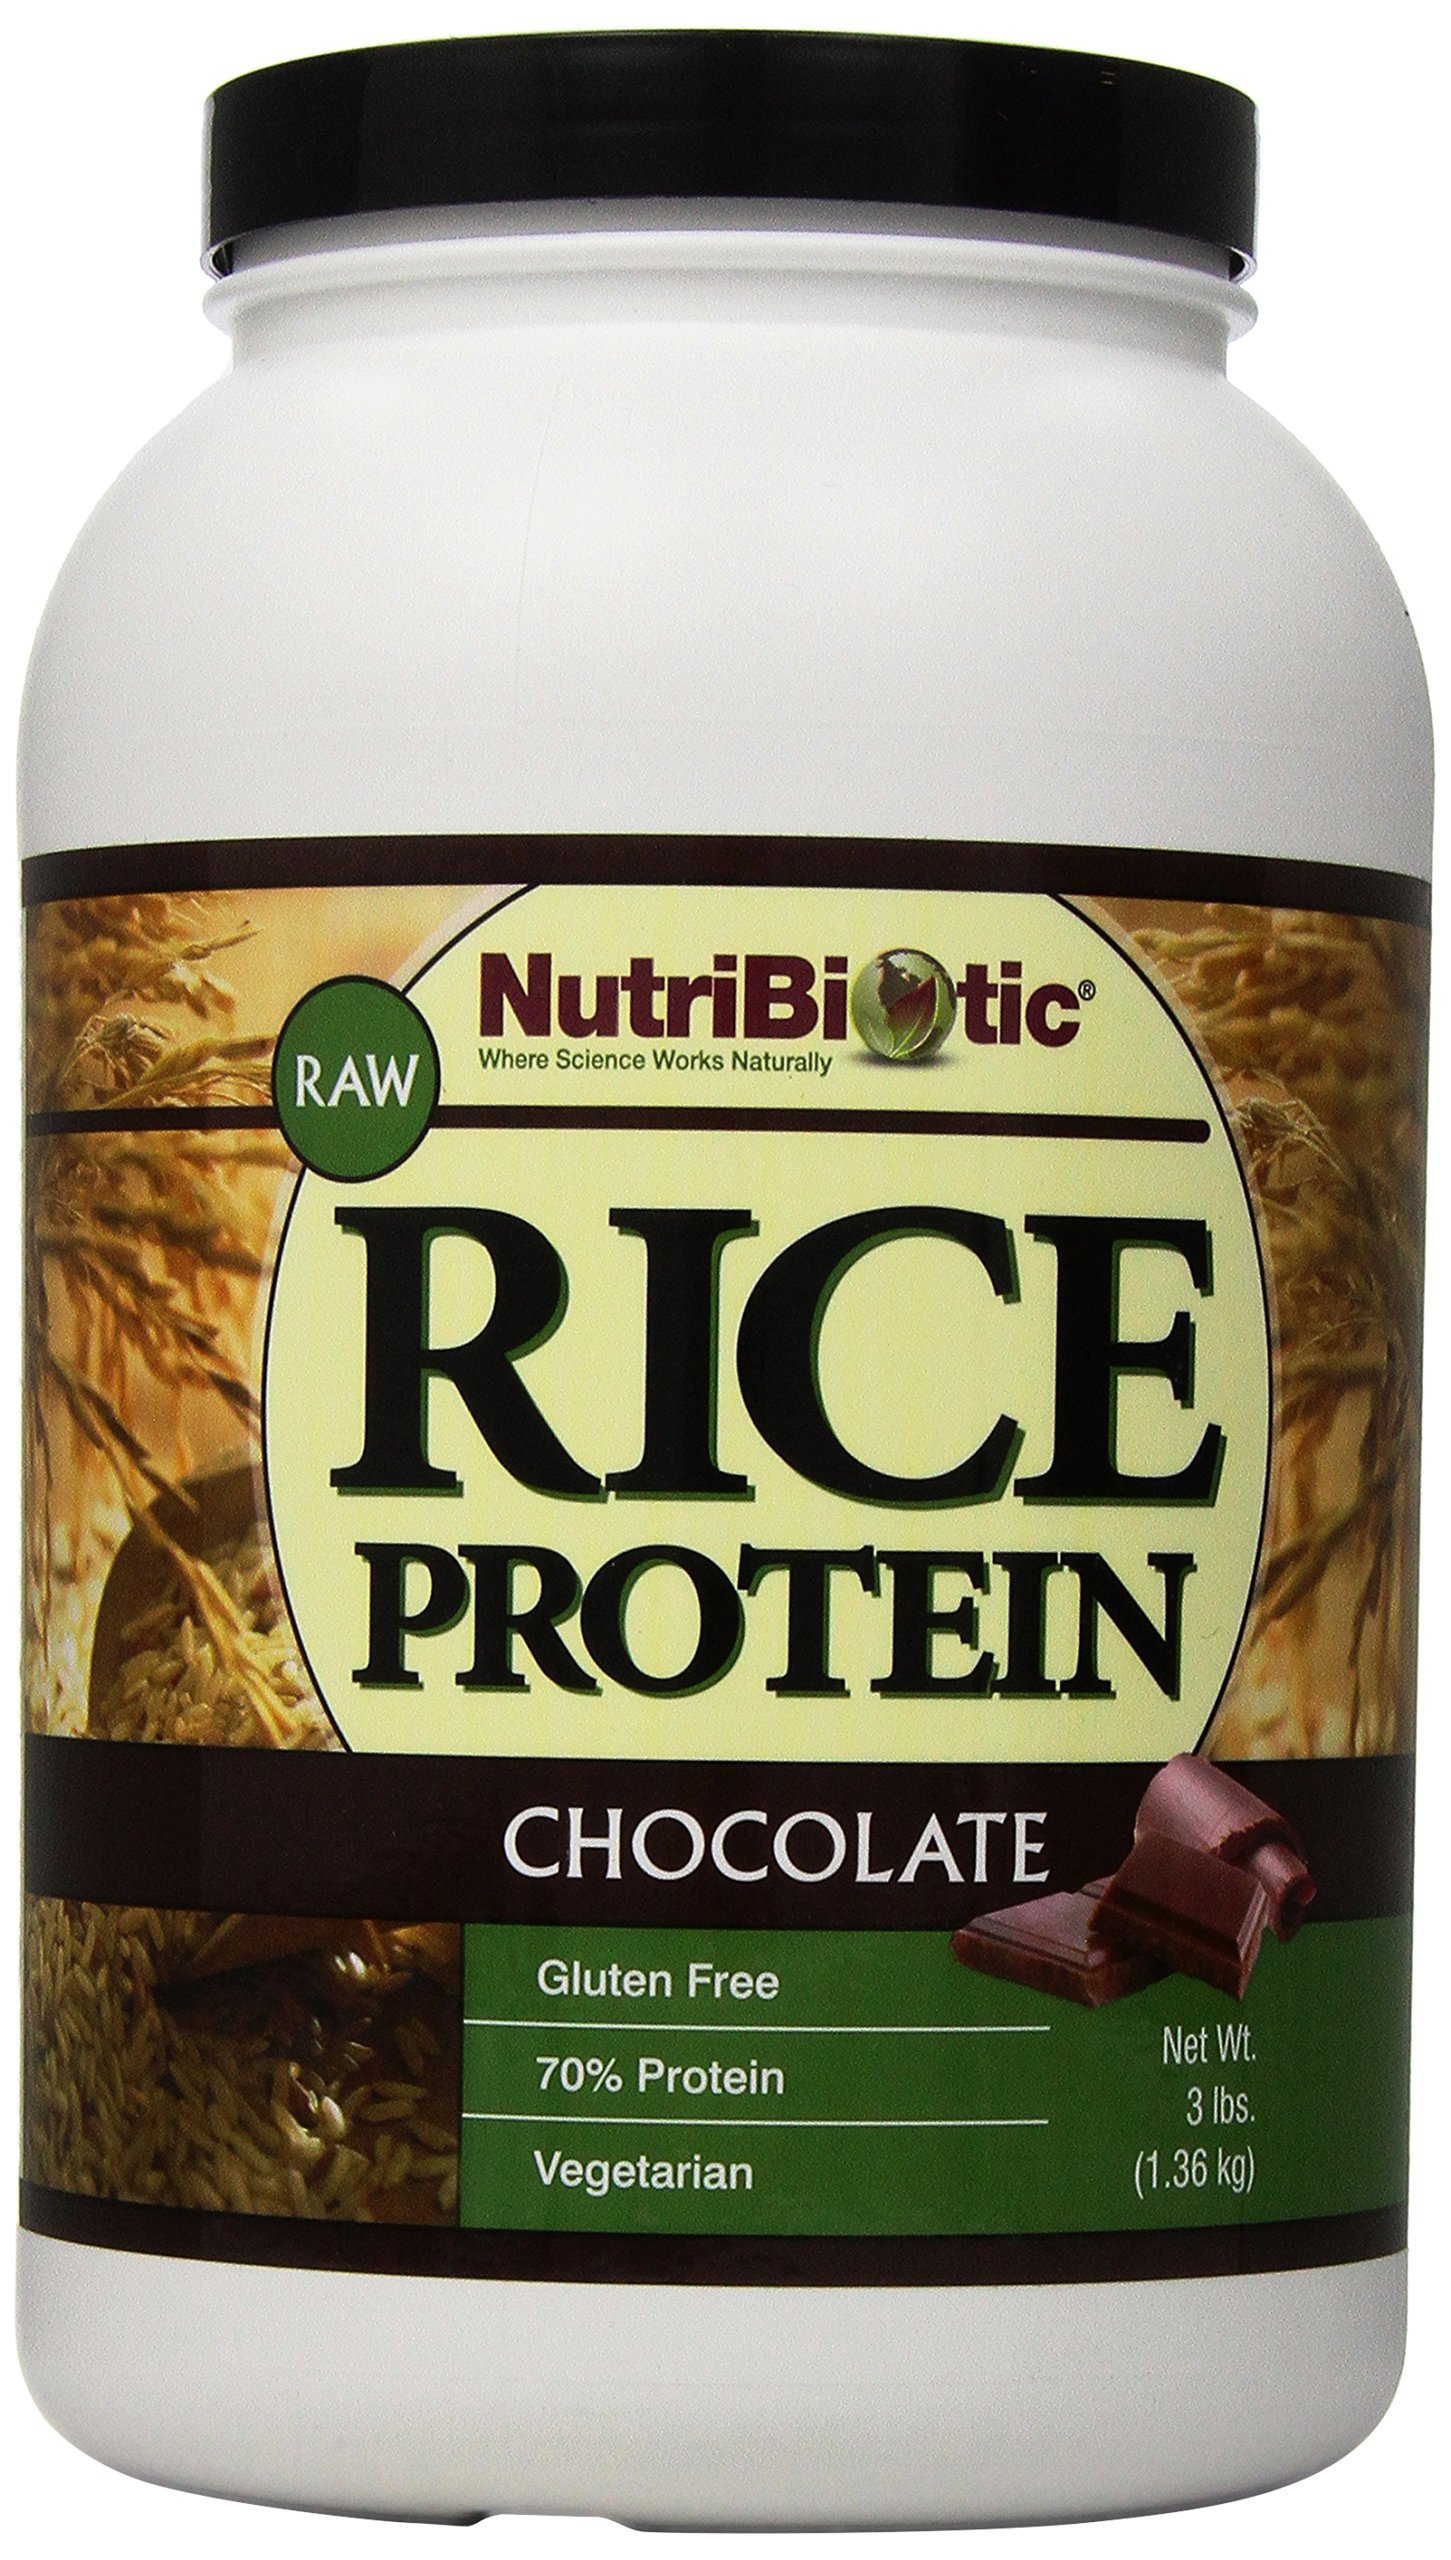 Nutribiotic Rice Protein, Chocolate, 3 Pounds